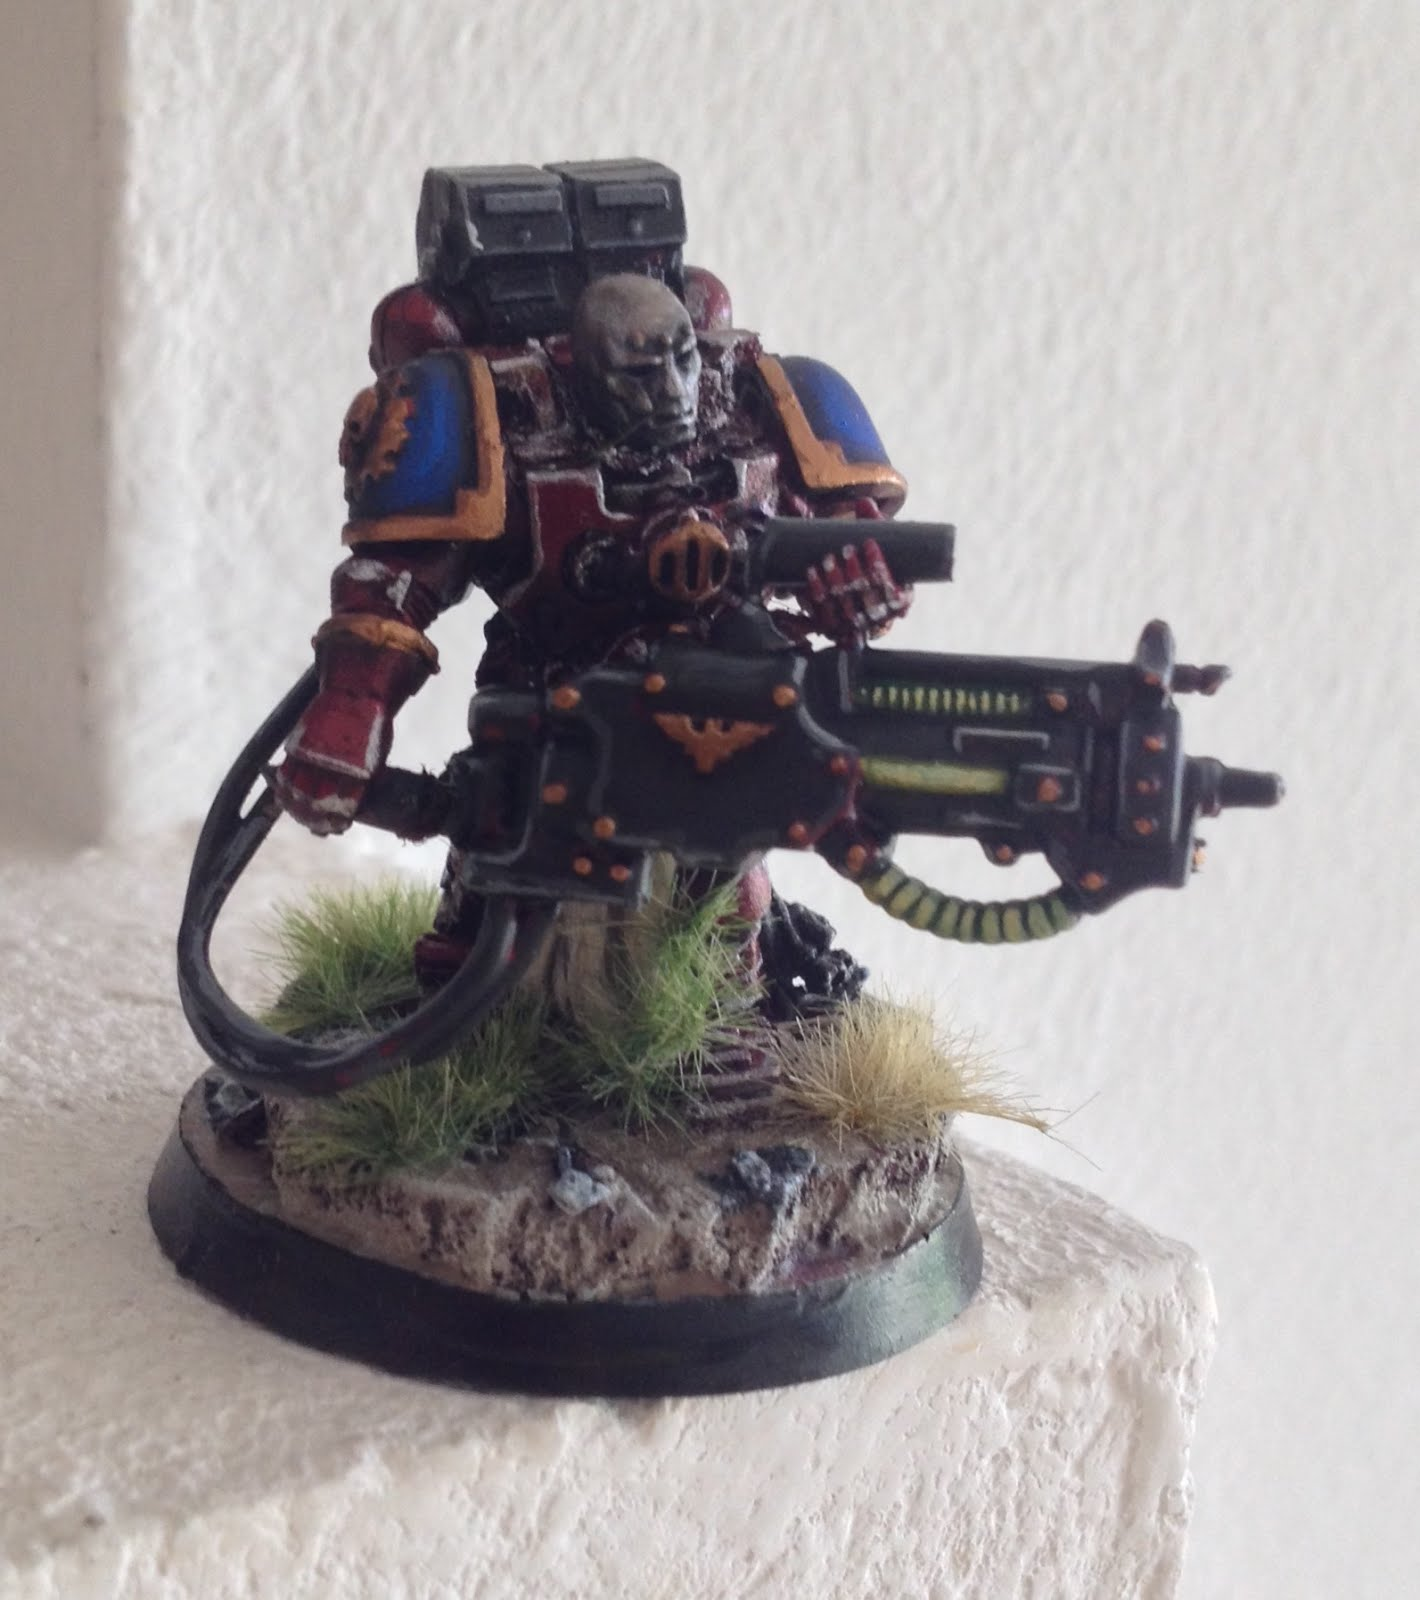 My Tech Marine With The Conversion Beamer Is From Old Game Space Crusade As There Are Almost No Other Model Pieces Available